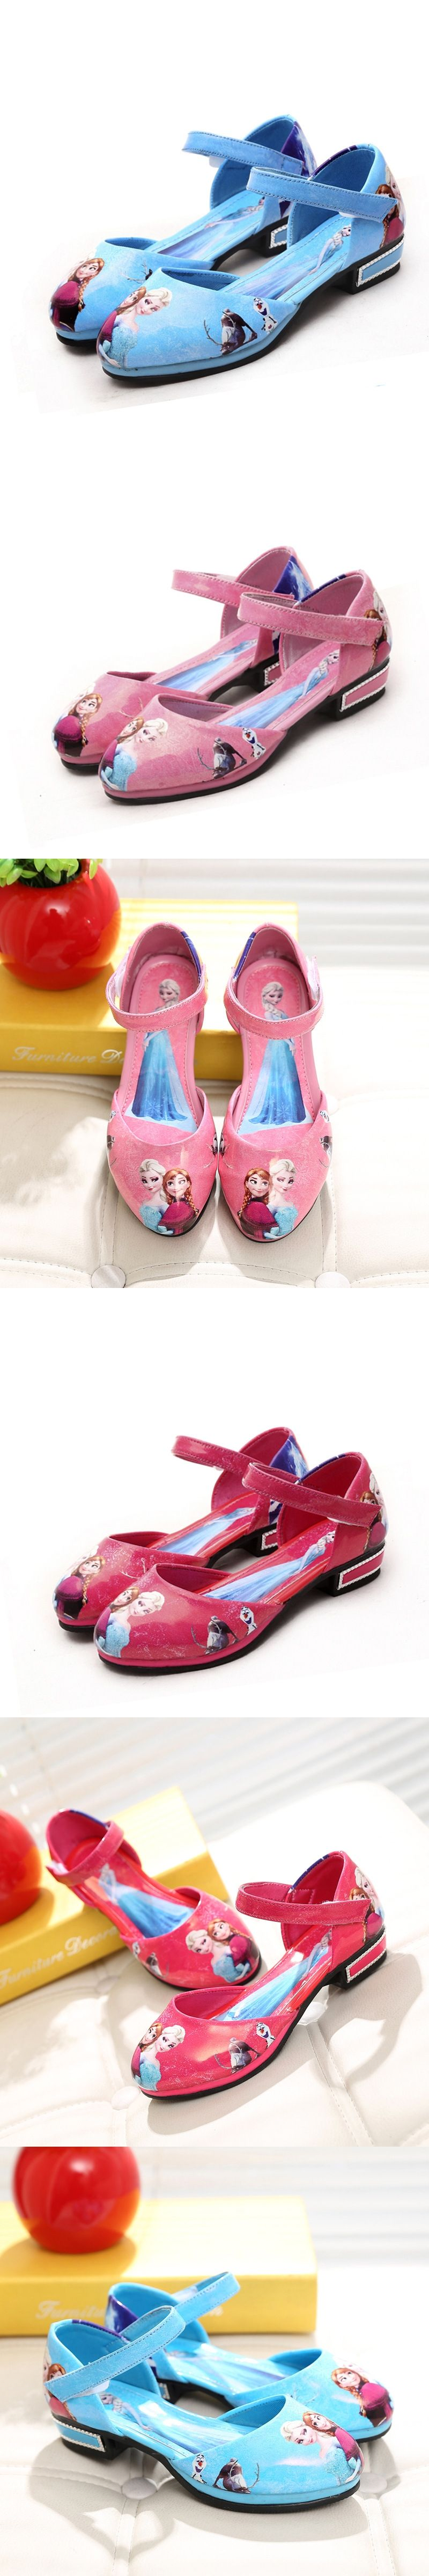 Spring Hot Sale Flower Girls Shoes Princess Single Shoes For Girl